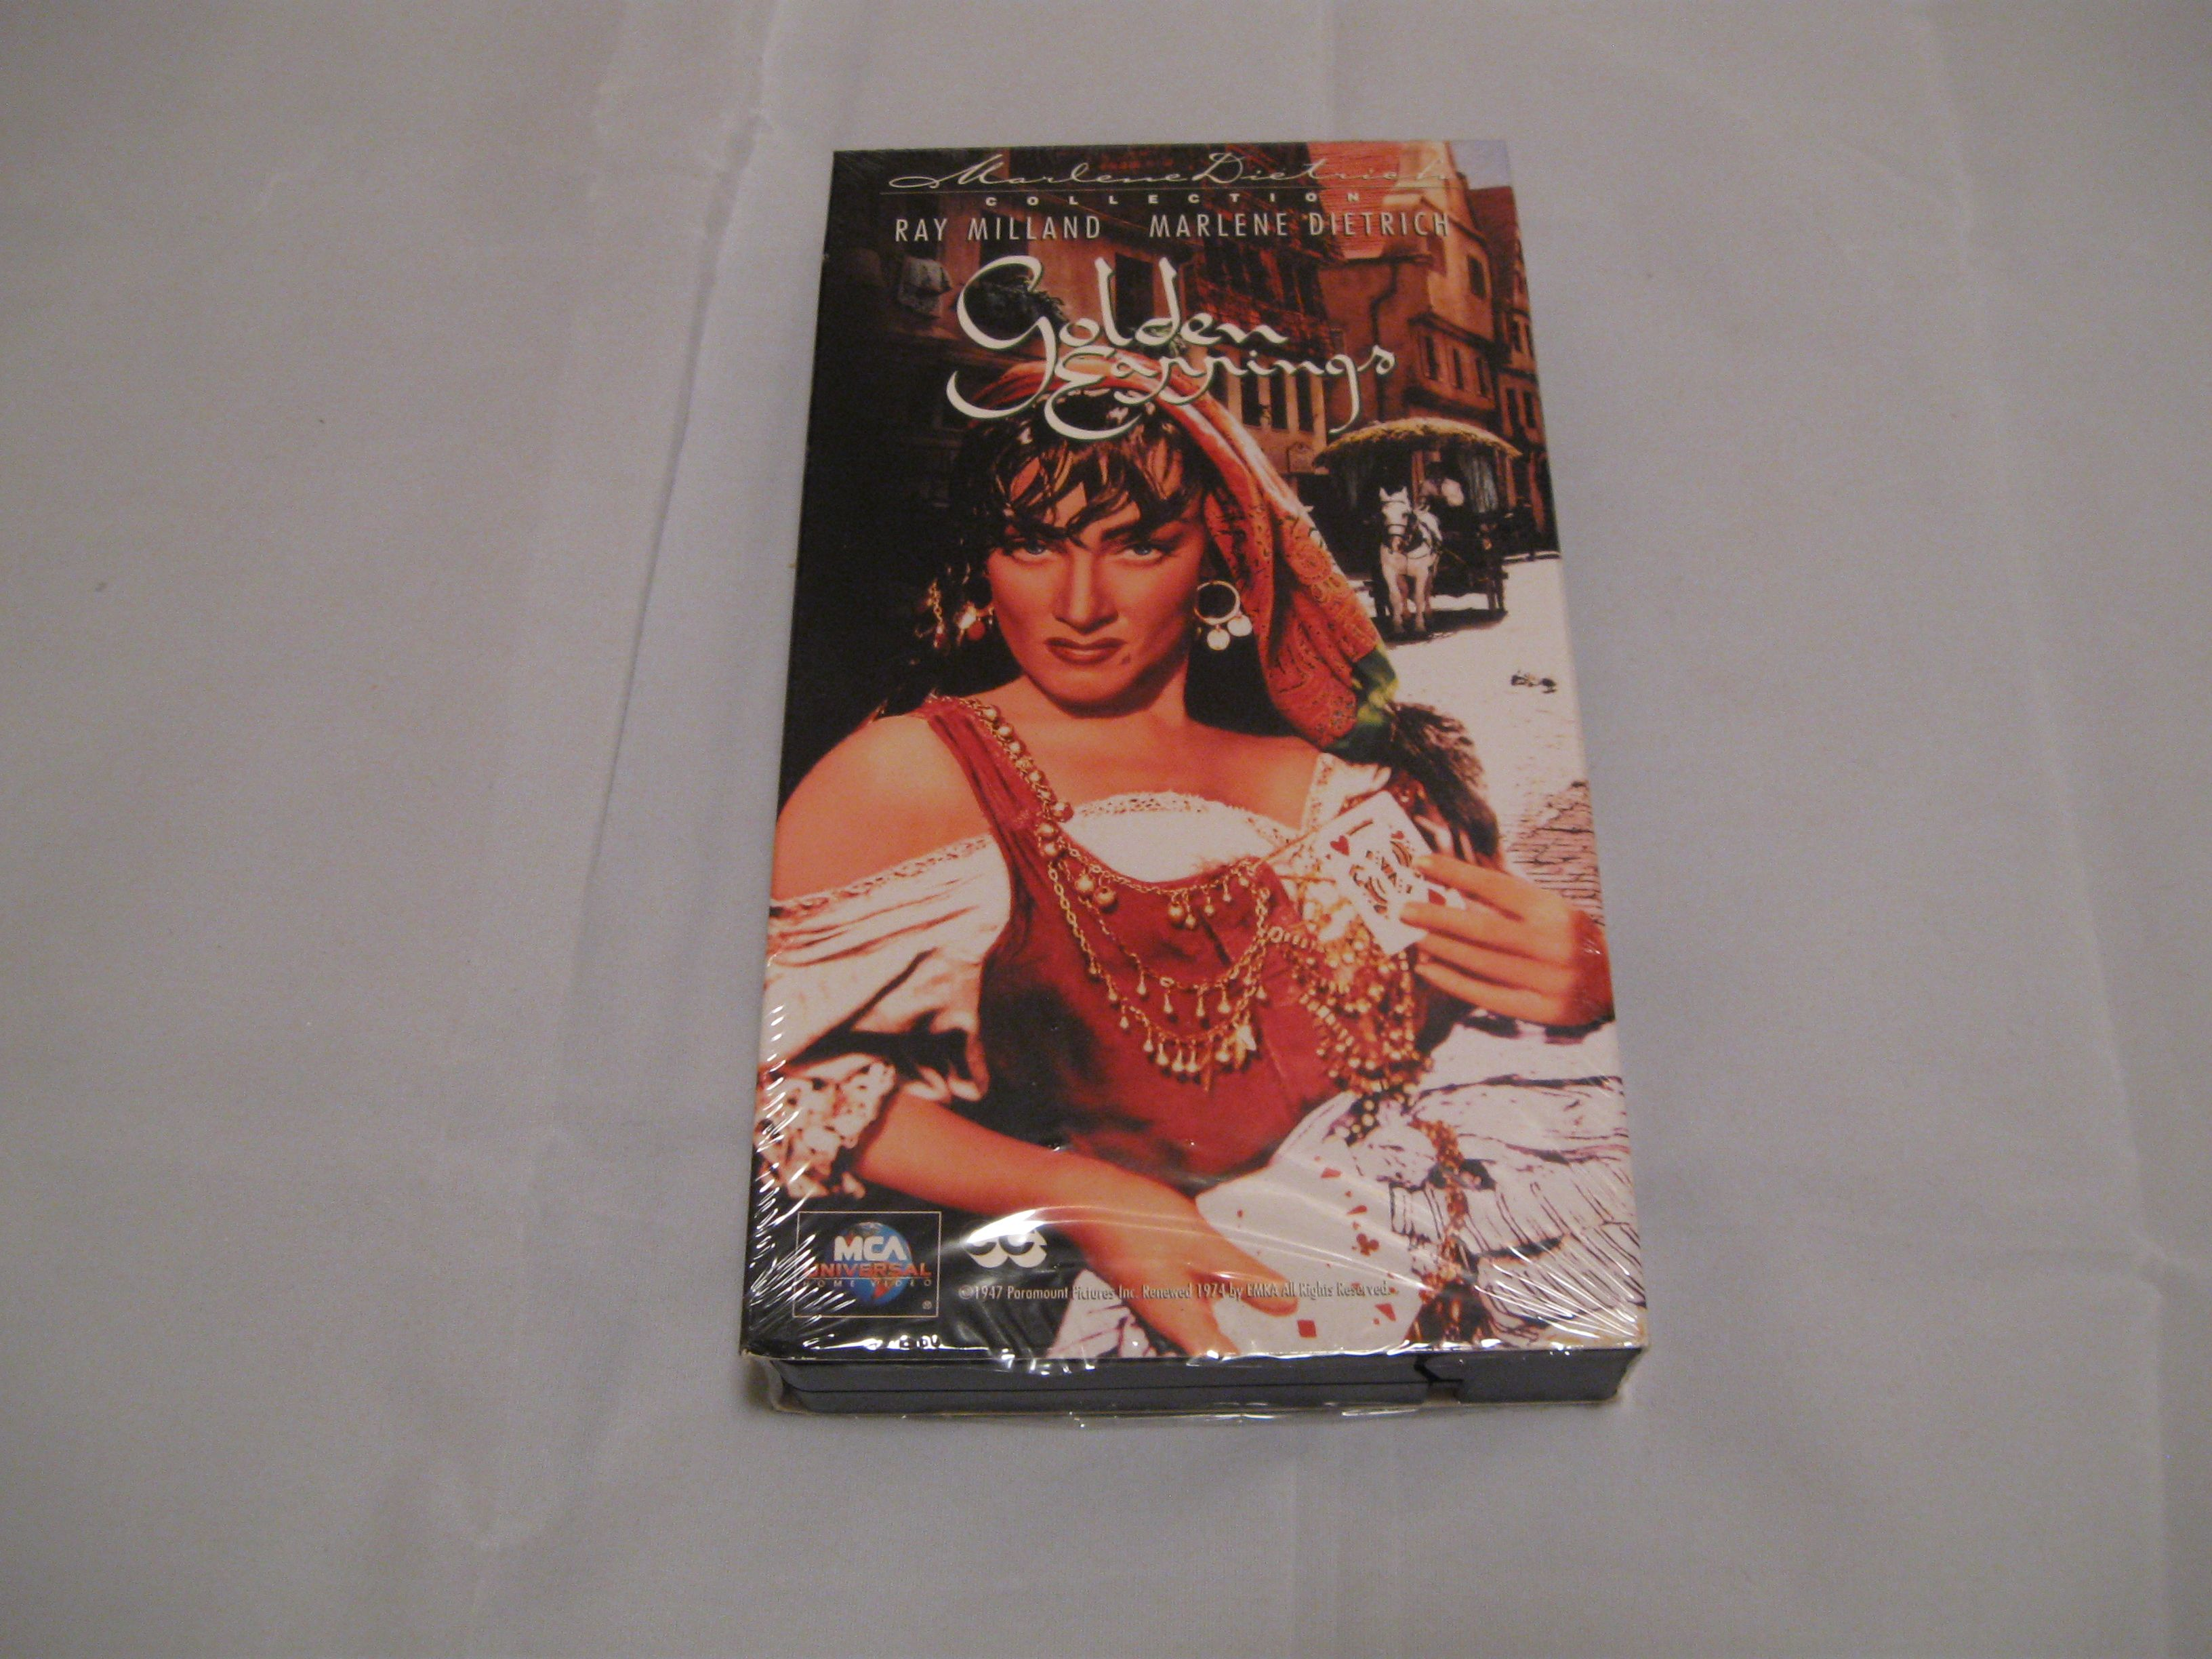 A Vhs Video Of The 1947 Movie Golden Earrings Starring Ray Milland And  Marlene Dietrich In